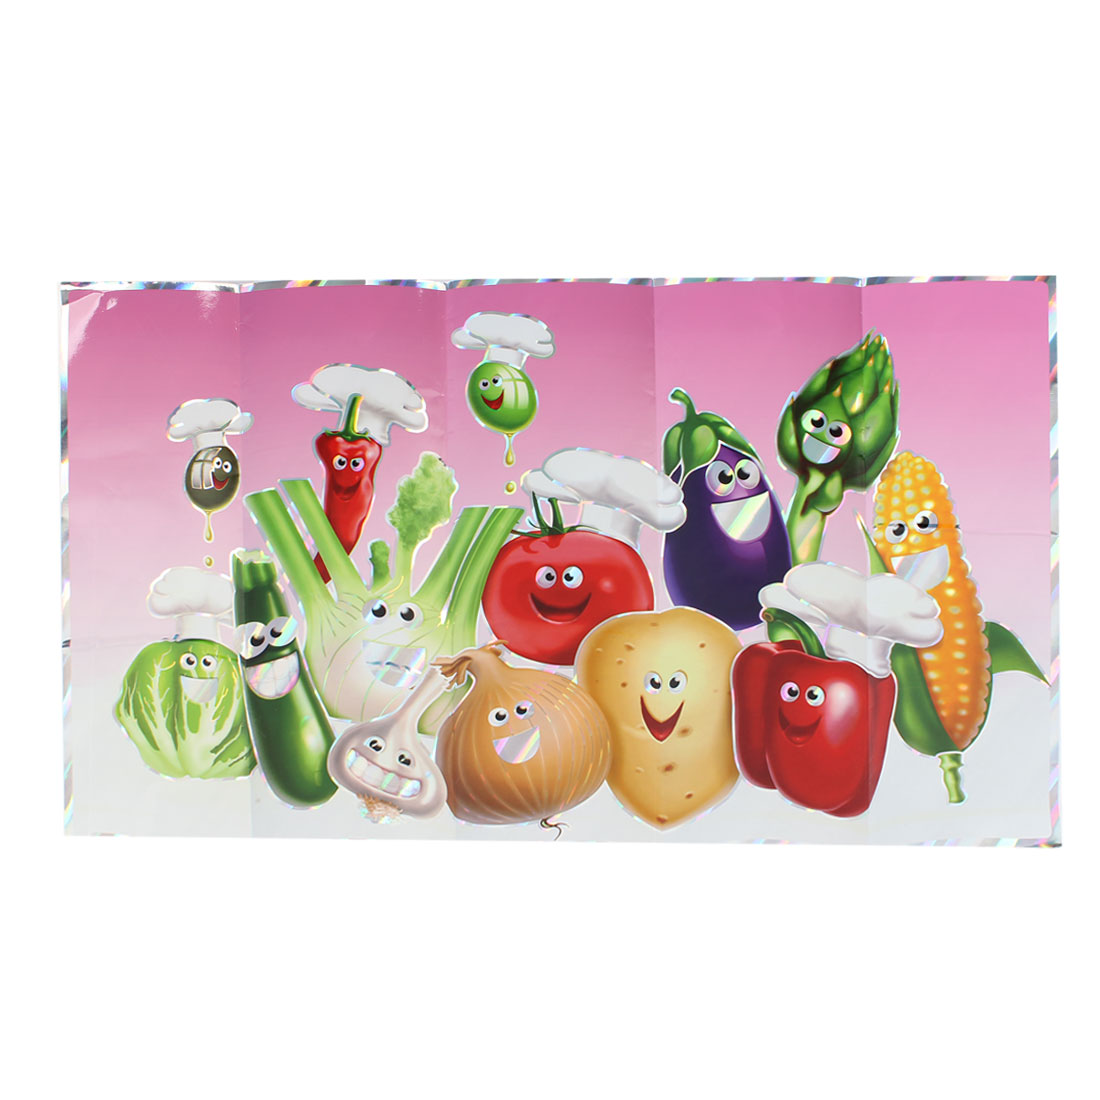 750mm x 450mm Kitchen Sheet Colorful Vegetables Pattern Wall Sticker Decal